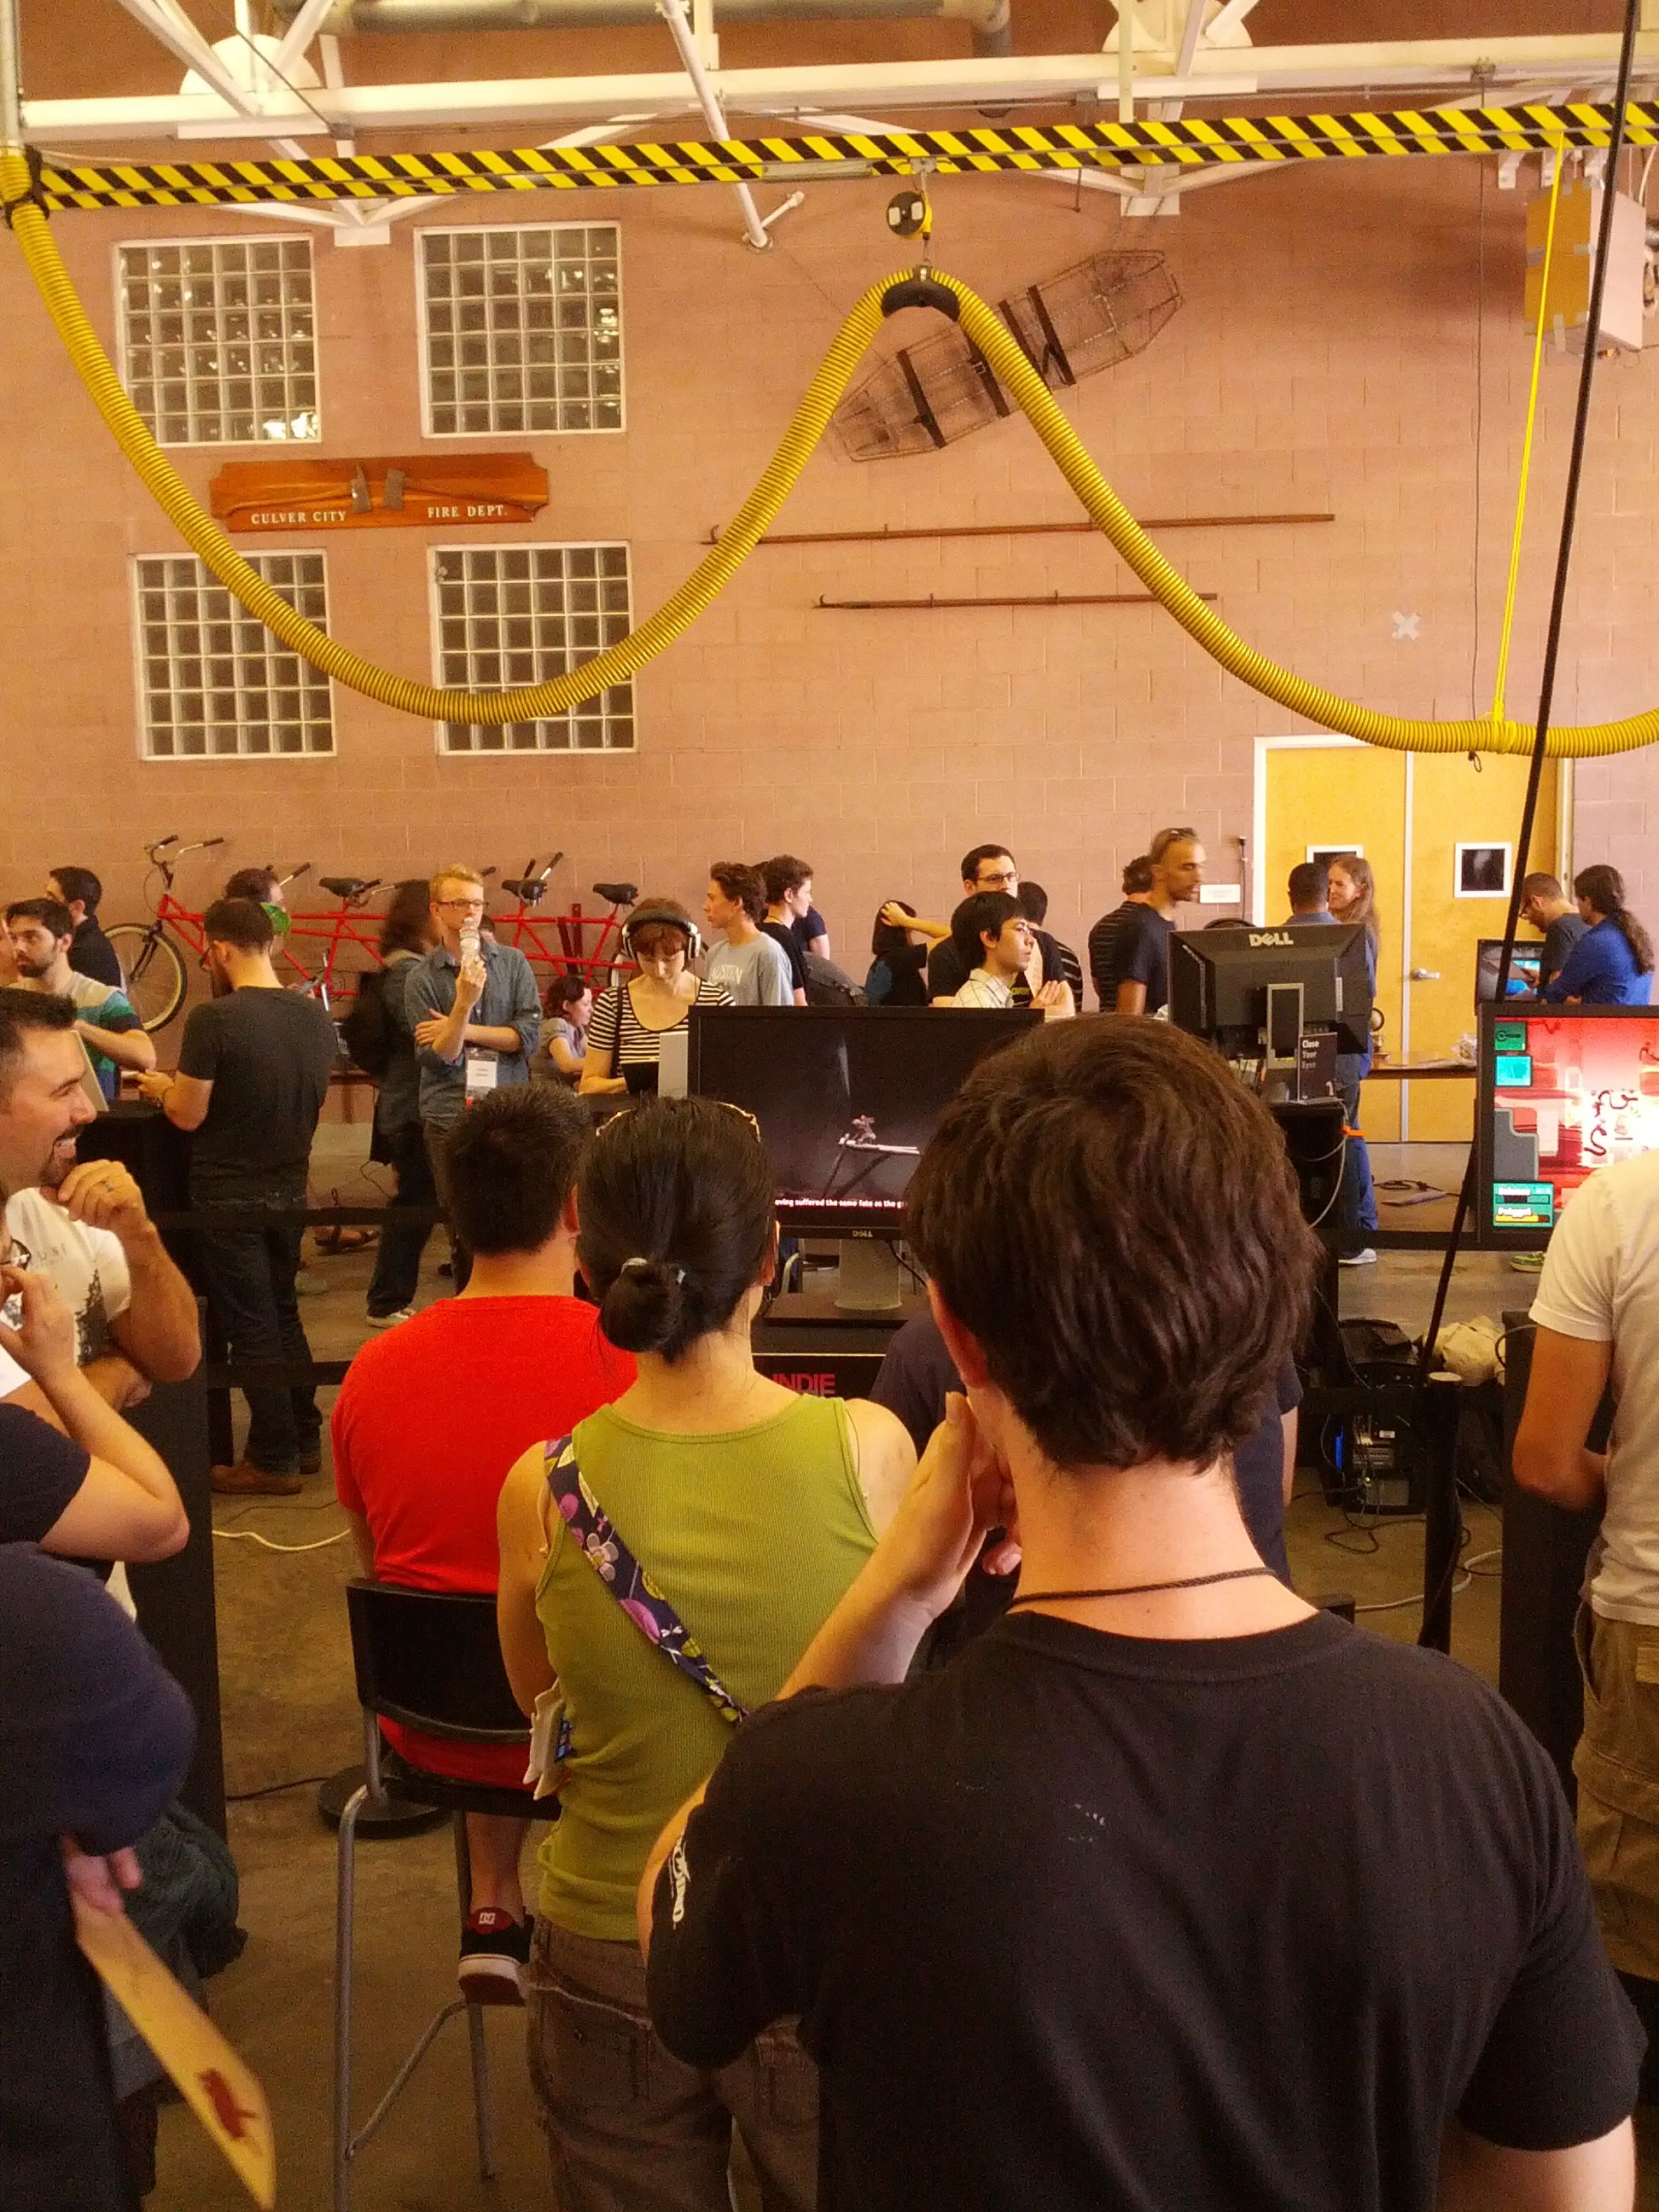 Fans in line to play a demo version of Never Alone at Indiecade 2014. #neveralonegame #indiecade #losangeles #gaming